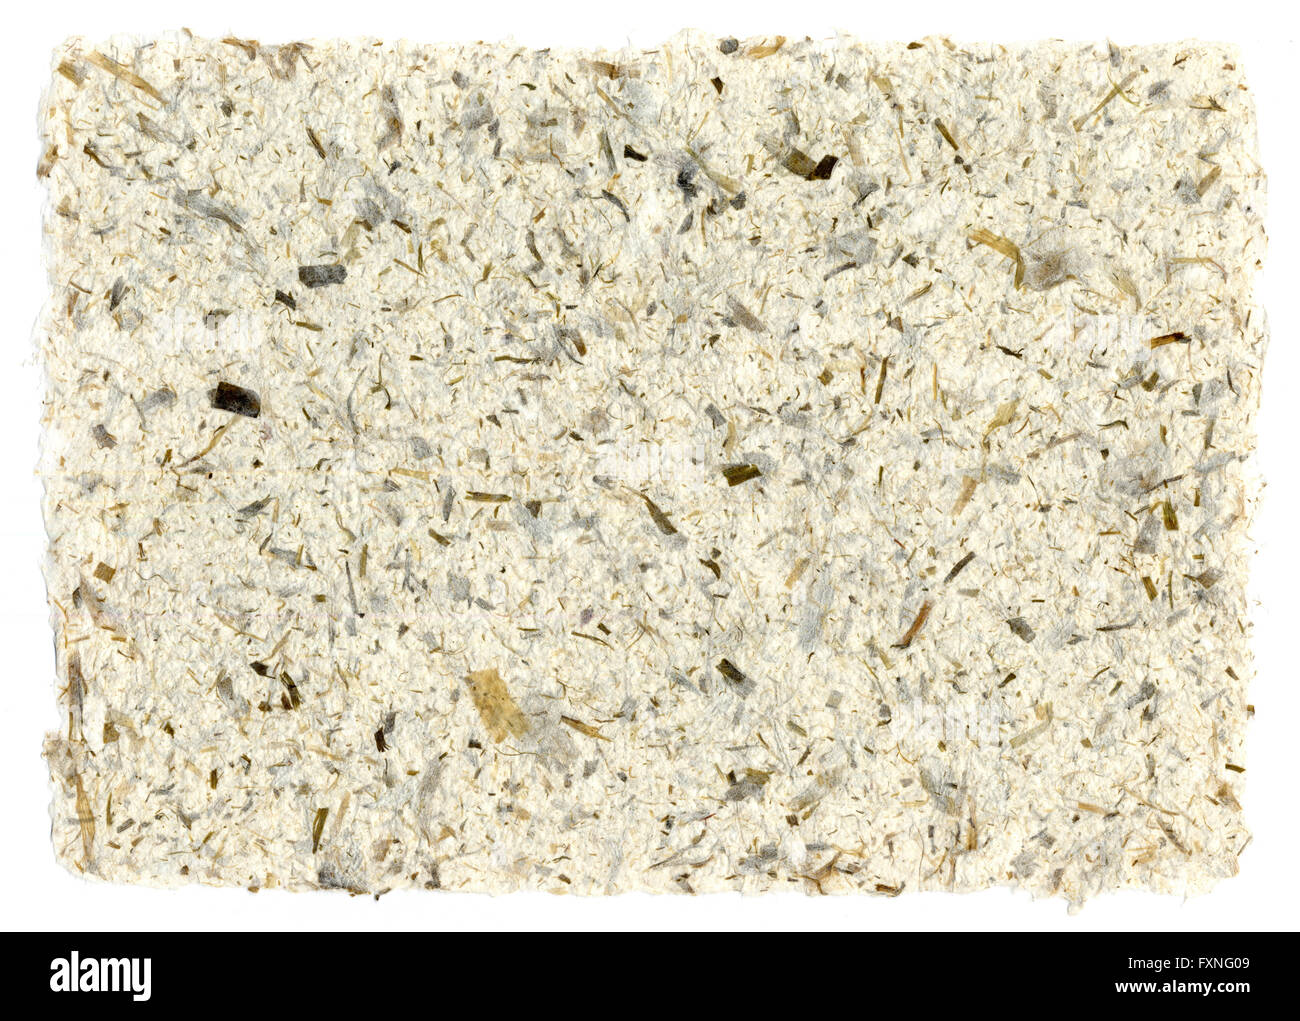 Sheet of handmade paper with plant fiber - Stock Image